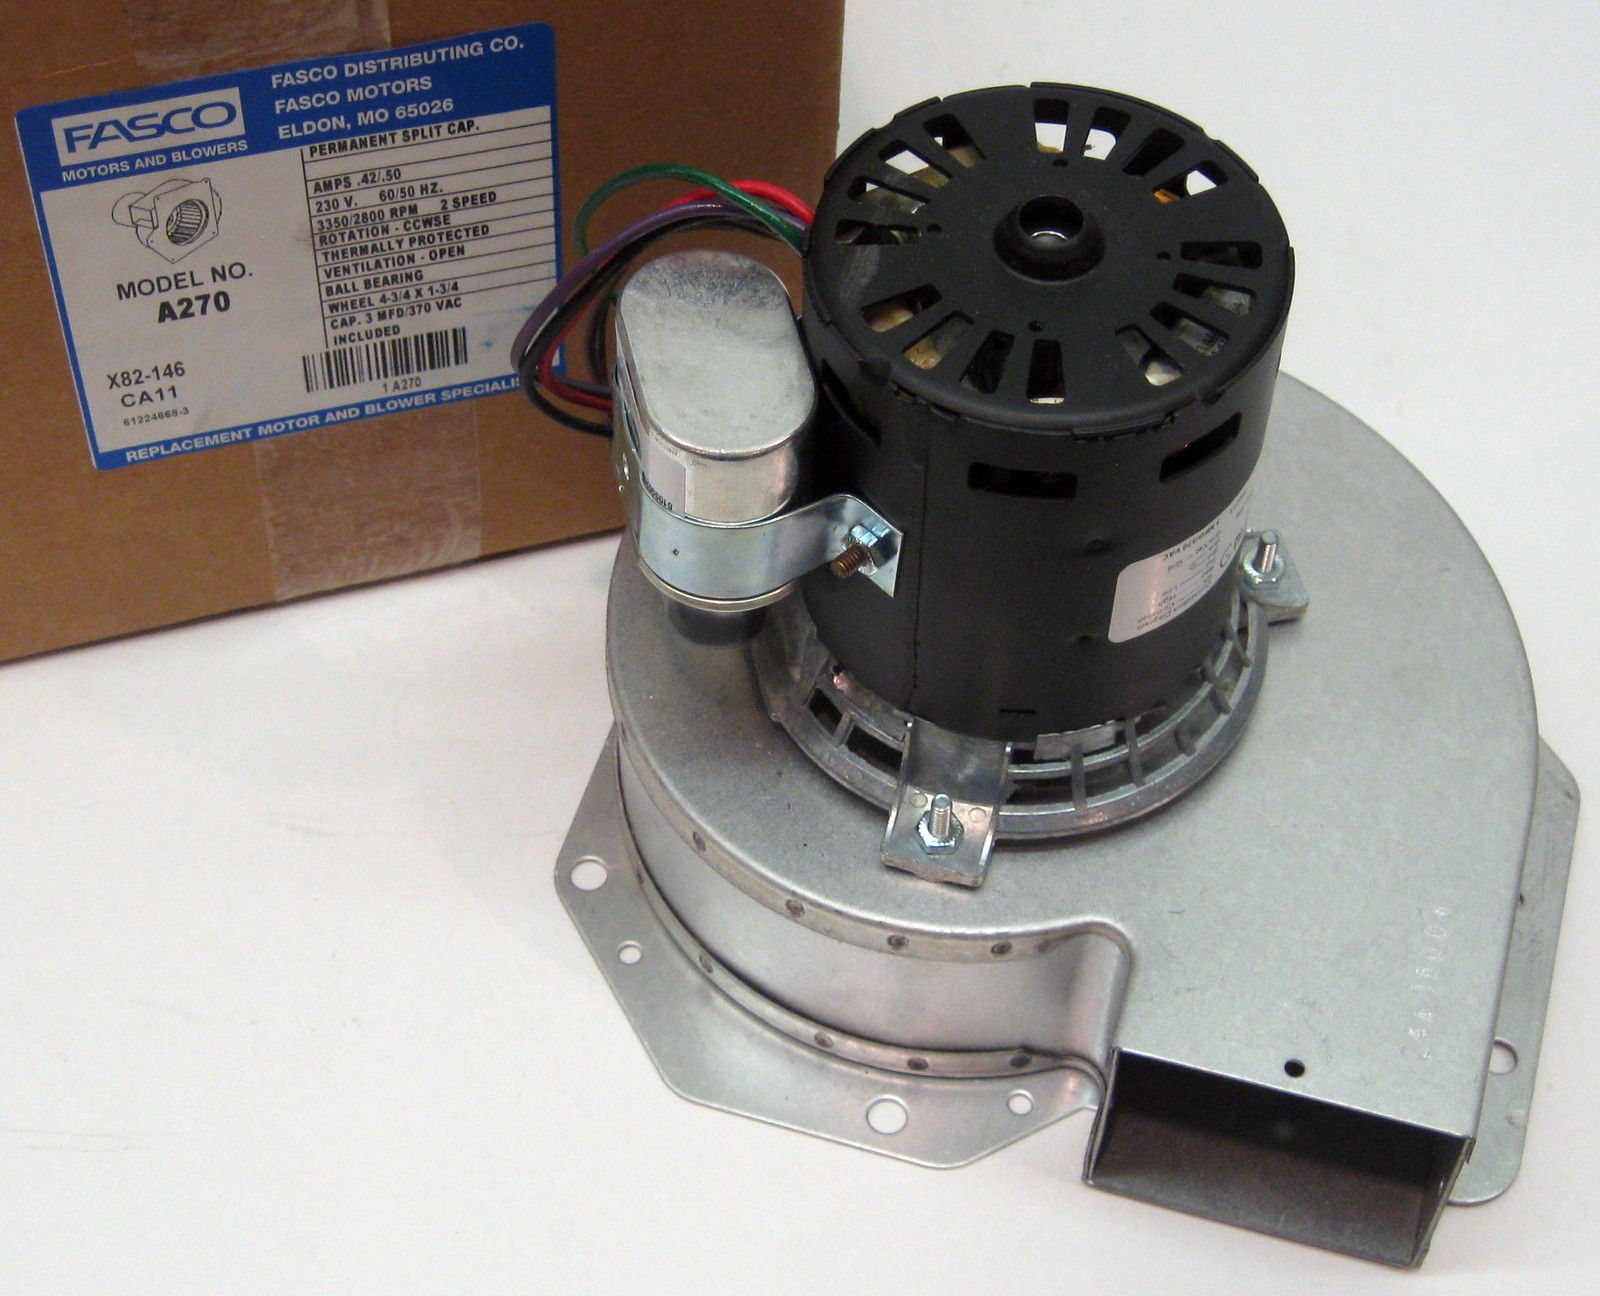 A270 Fasco Blower Furnace Draft Inducer Motor fits Trane 7062-5033 ...